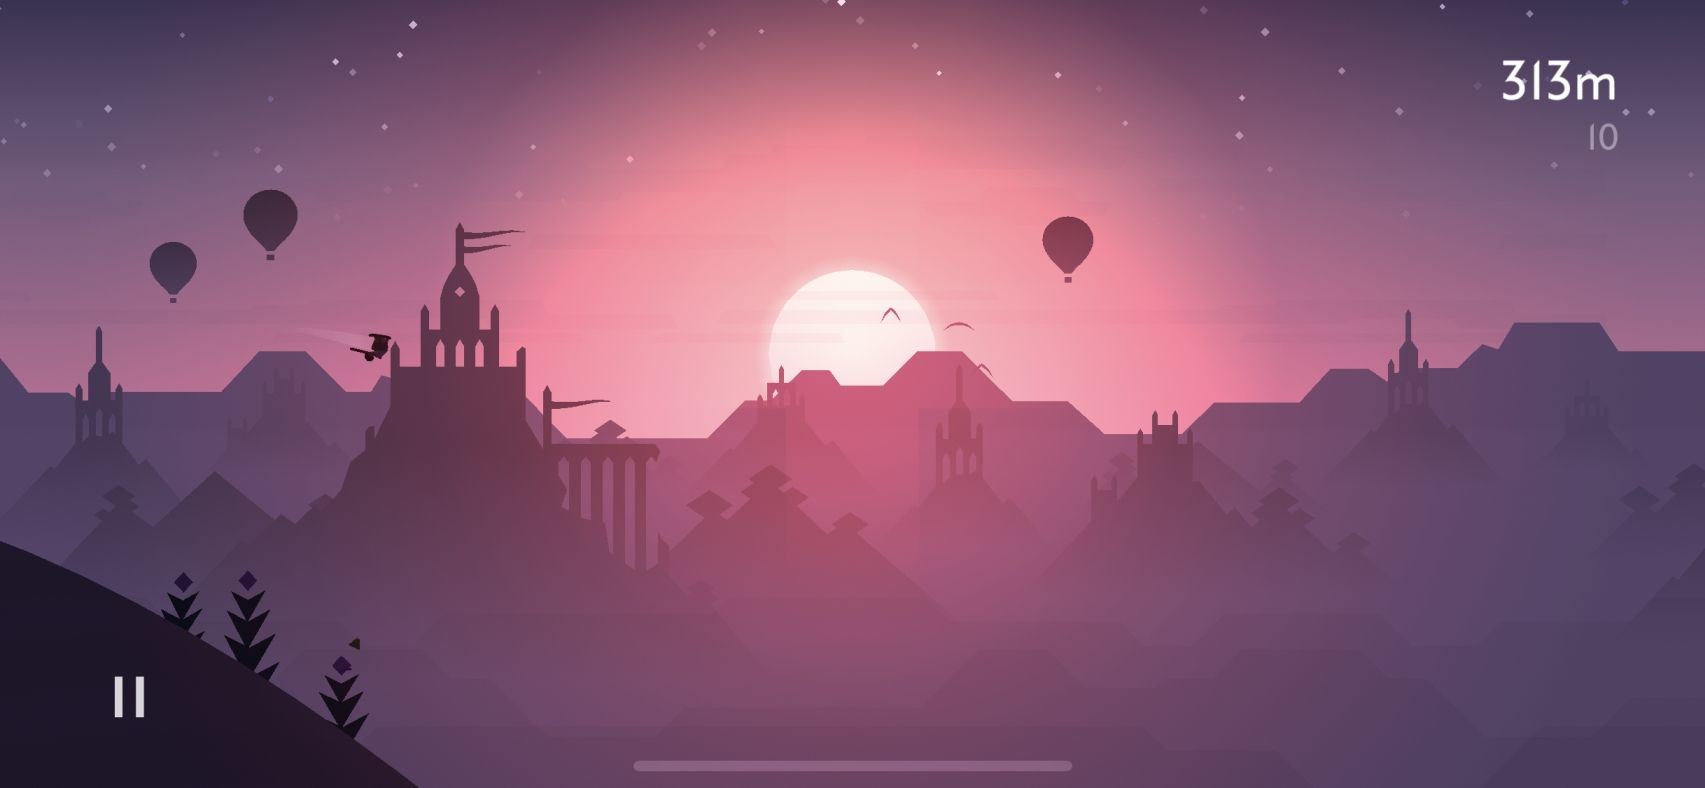 Alto's Odyssey (copie d'écran 18 sur iPhone / iPad / Apple TV)